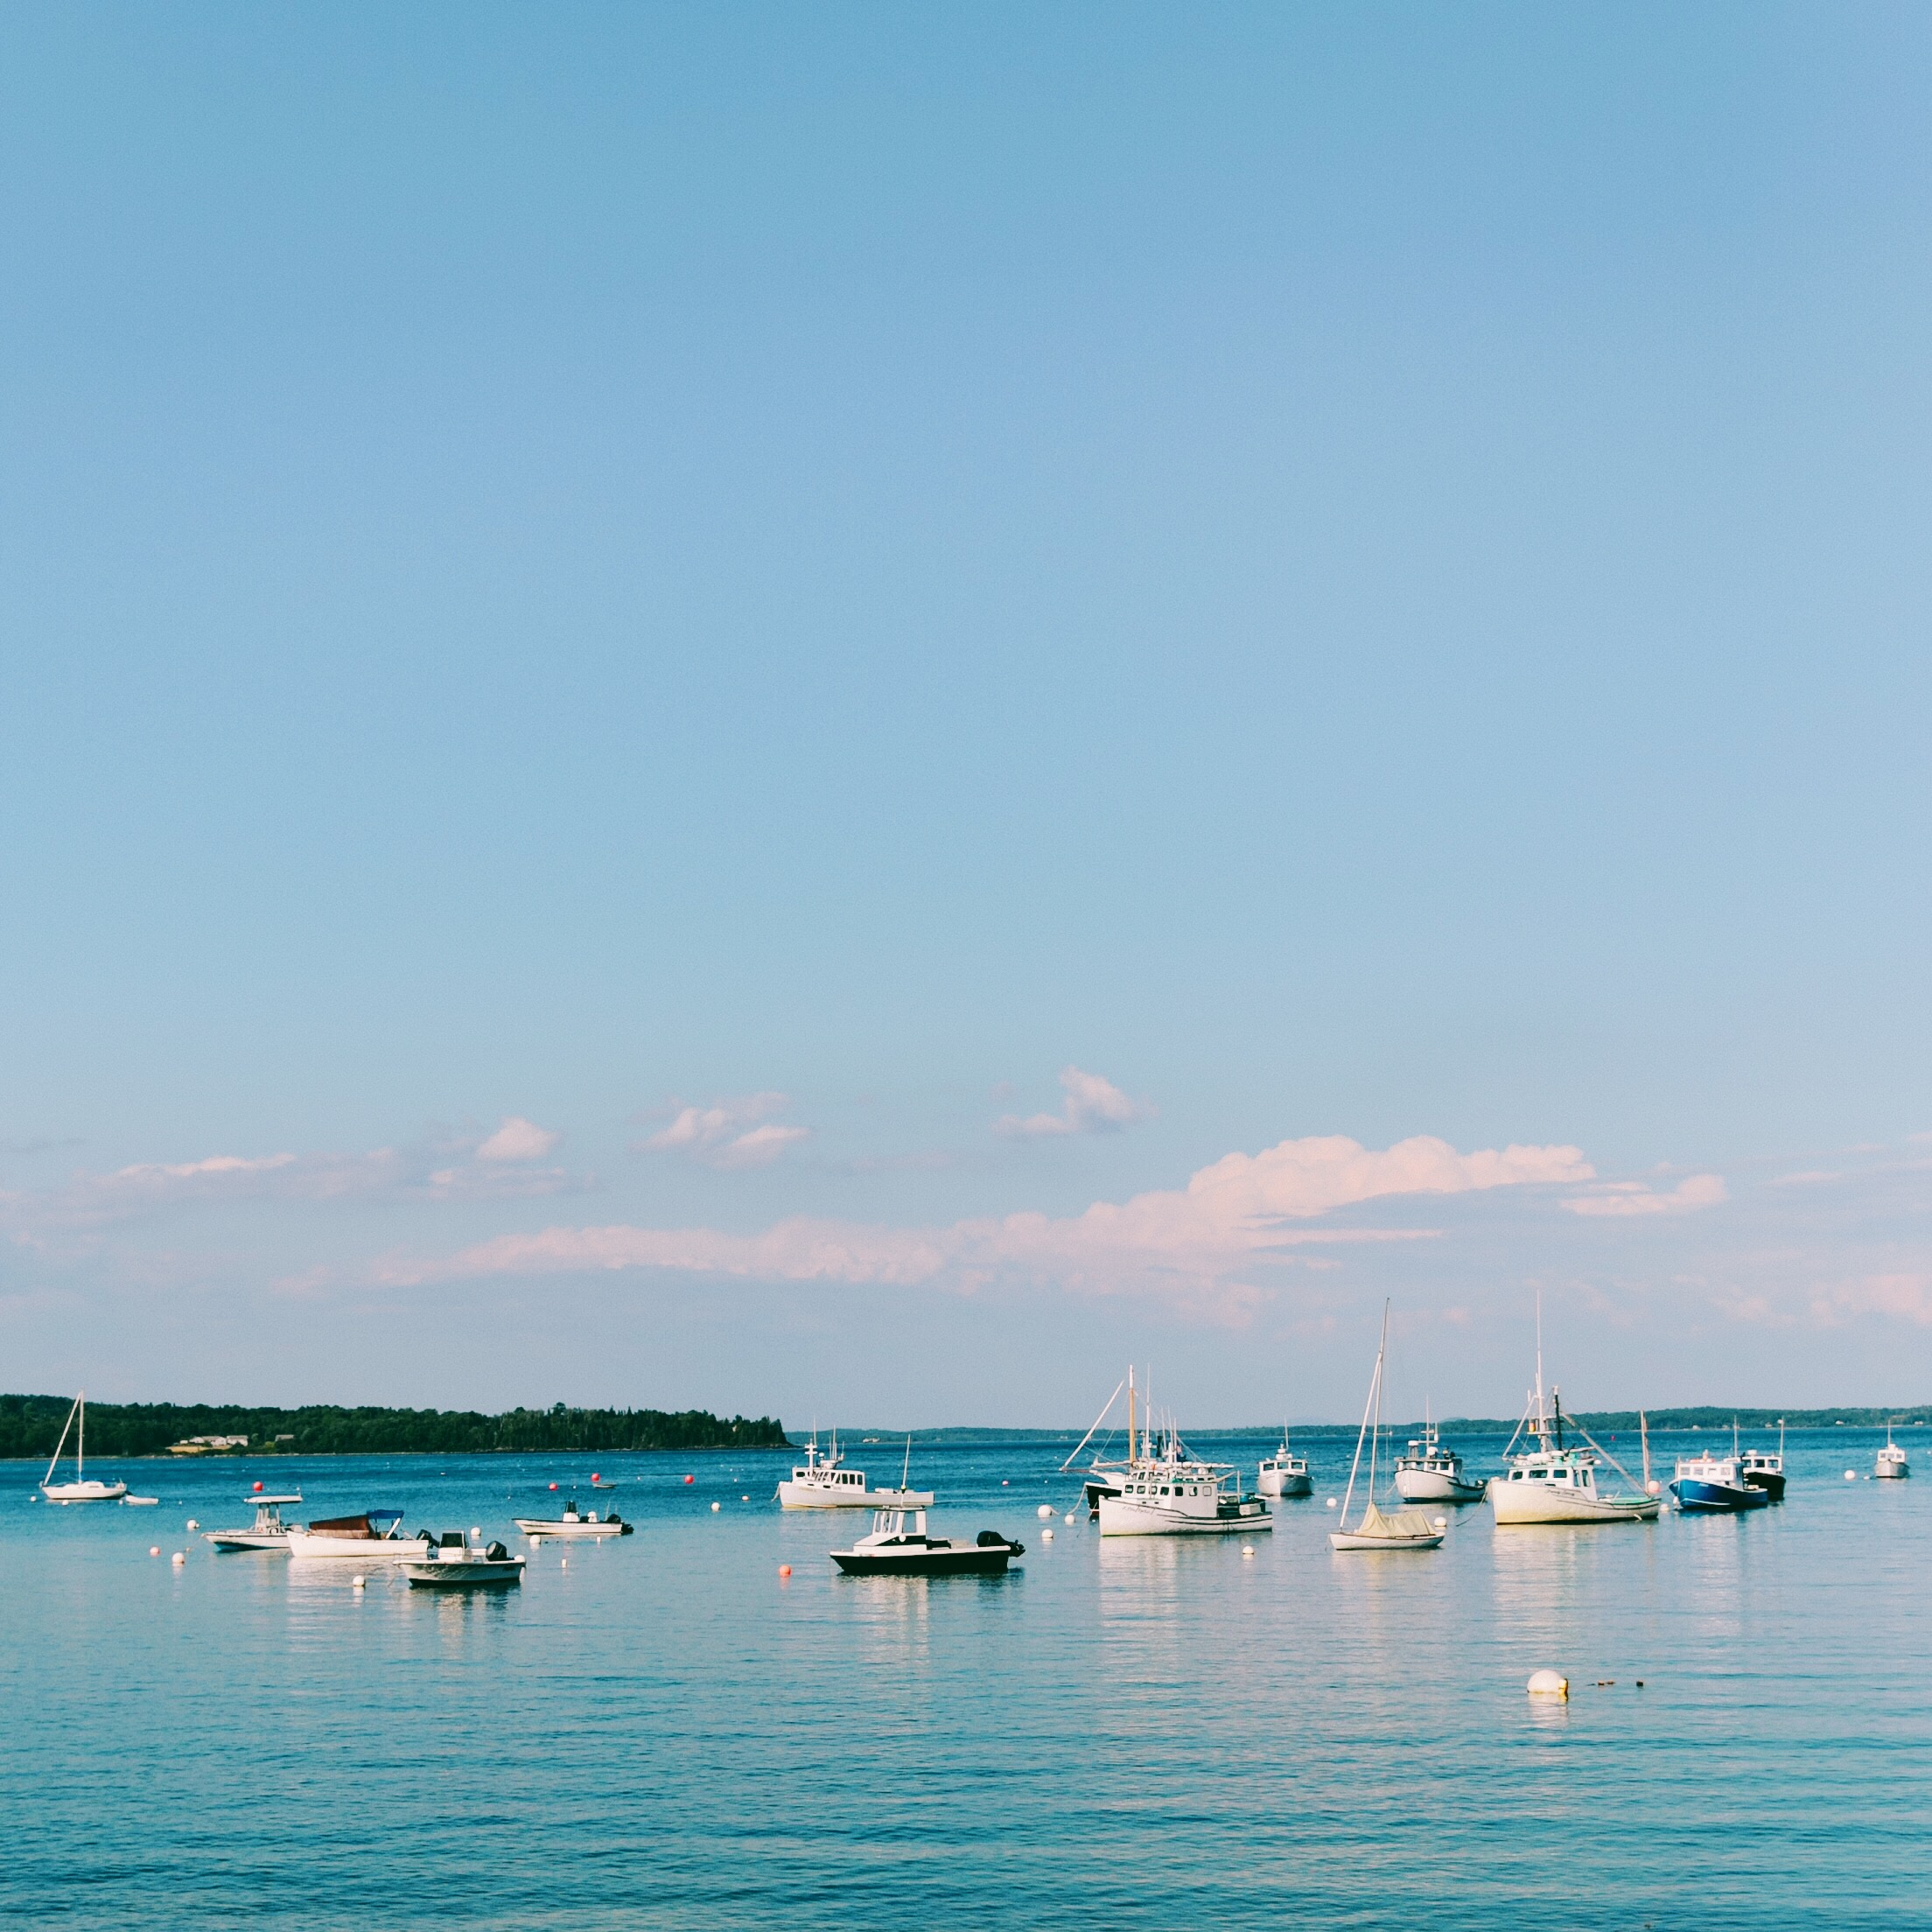 Best Places to Stay in Maine | Best Hotels on the Coast of Maine | Travel Guide to the coast of Maine | How to Experience Maine | Camden, Rockport, Rockland, Portland, Kennebunkport, Maine | Best of Maine via Travel Blogger @elanaloo + elanaloo.com